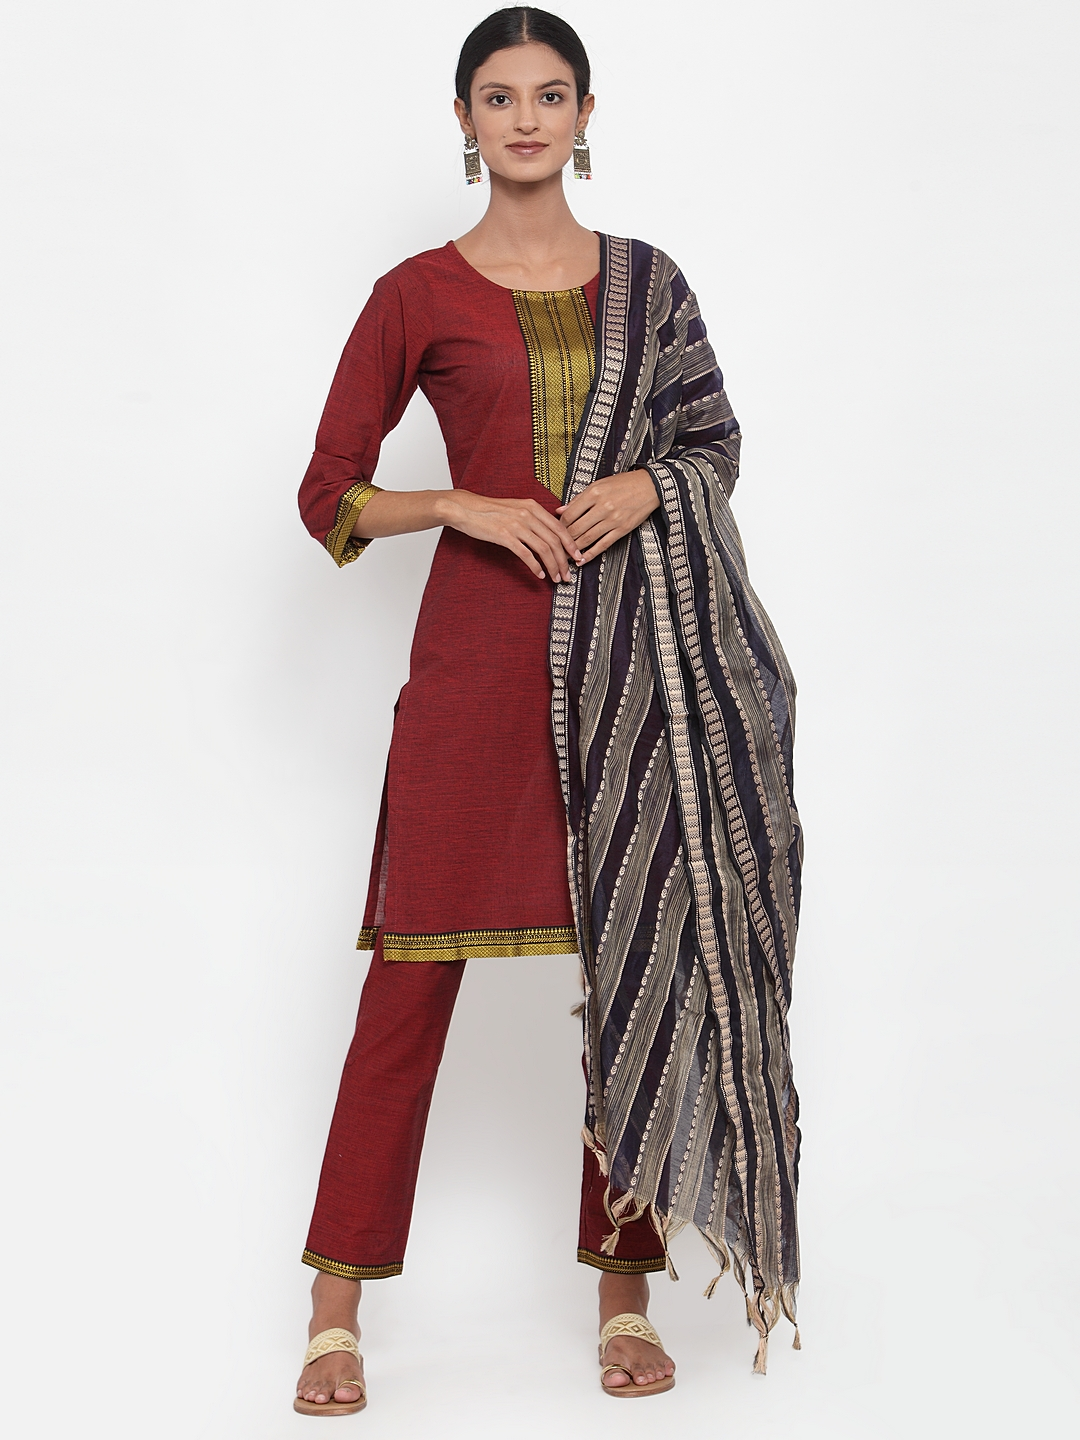 Jompers | Jompers® Women Maroon Pure Cotton Kurta with pants and woven design dupatta set